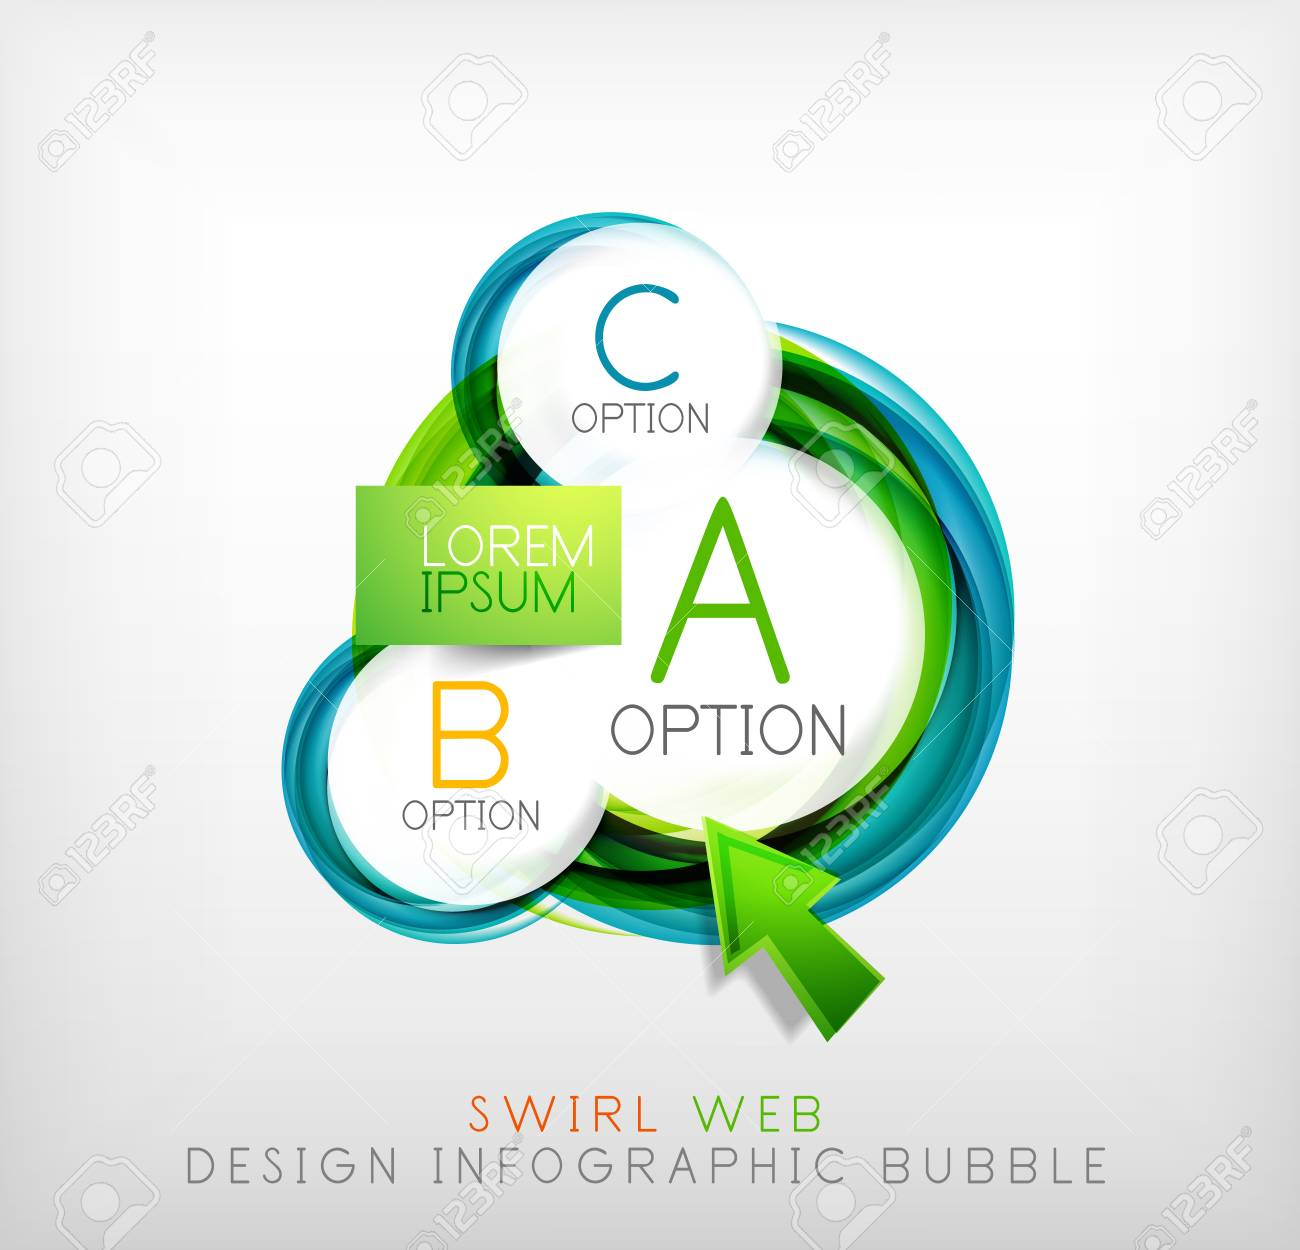 swirl web design infographic bubble flat concept can be used